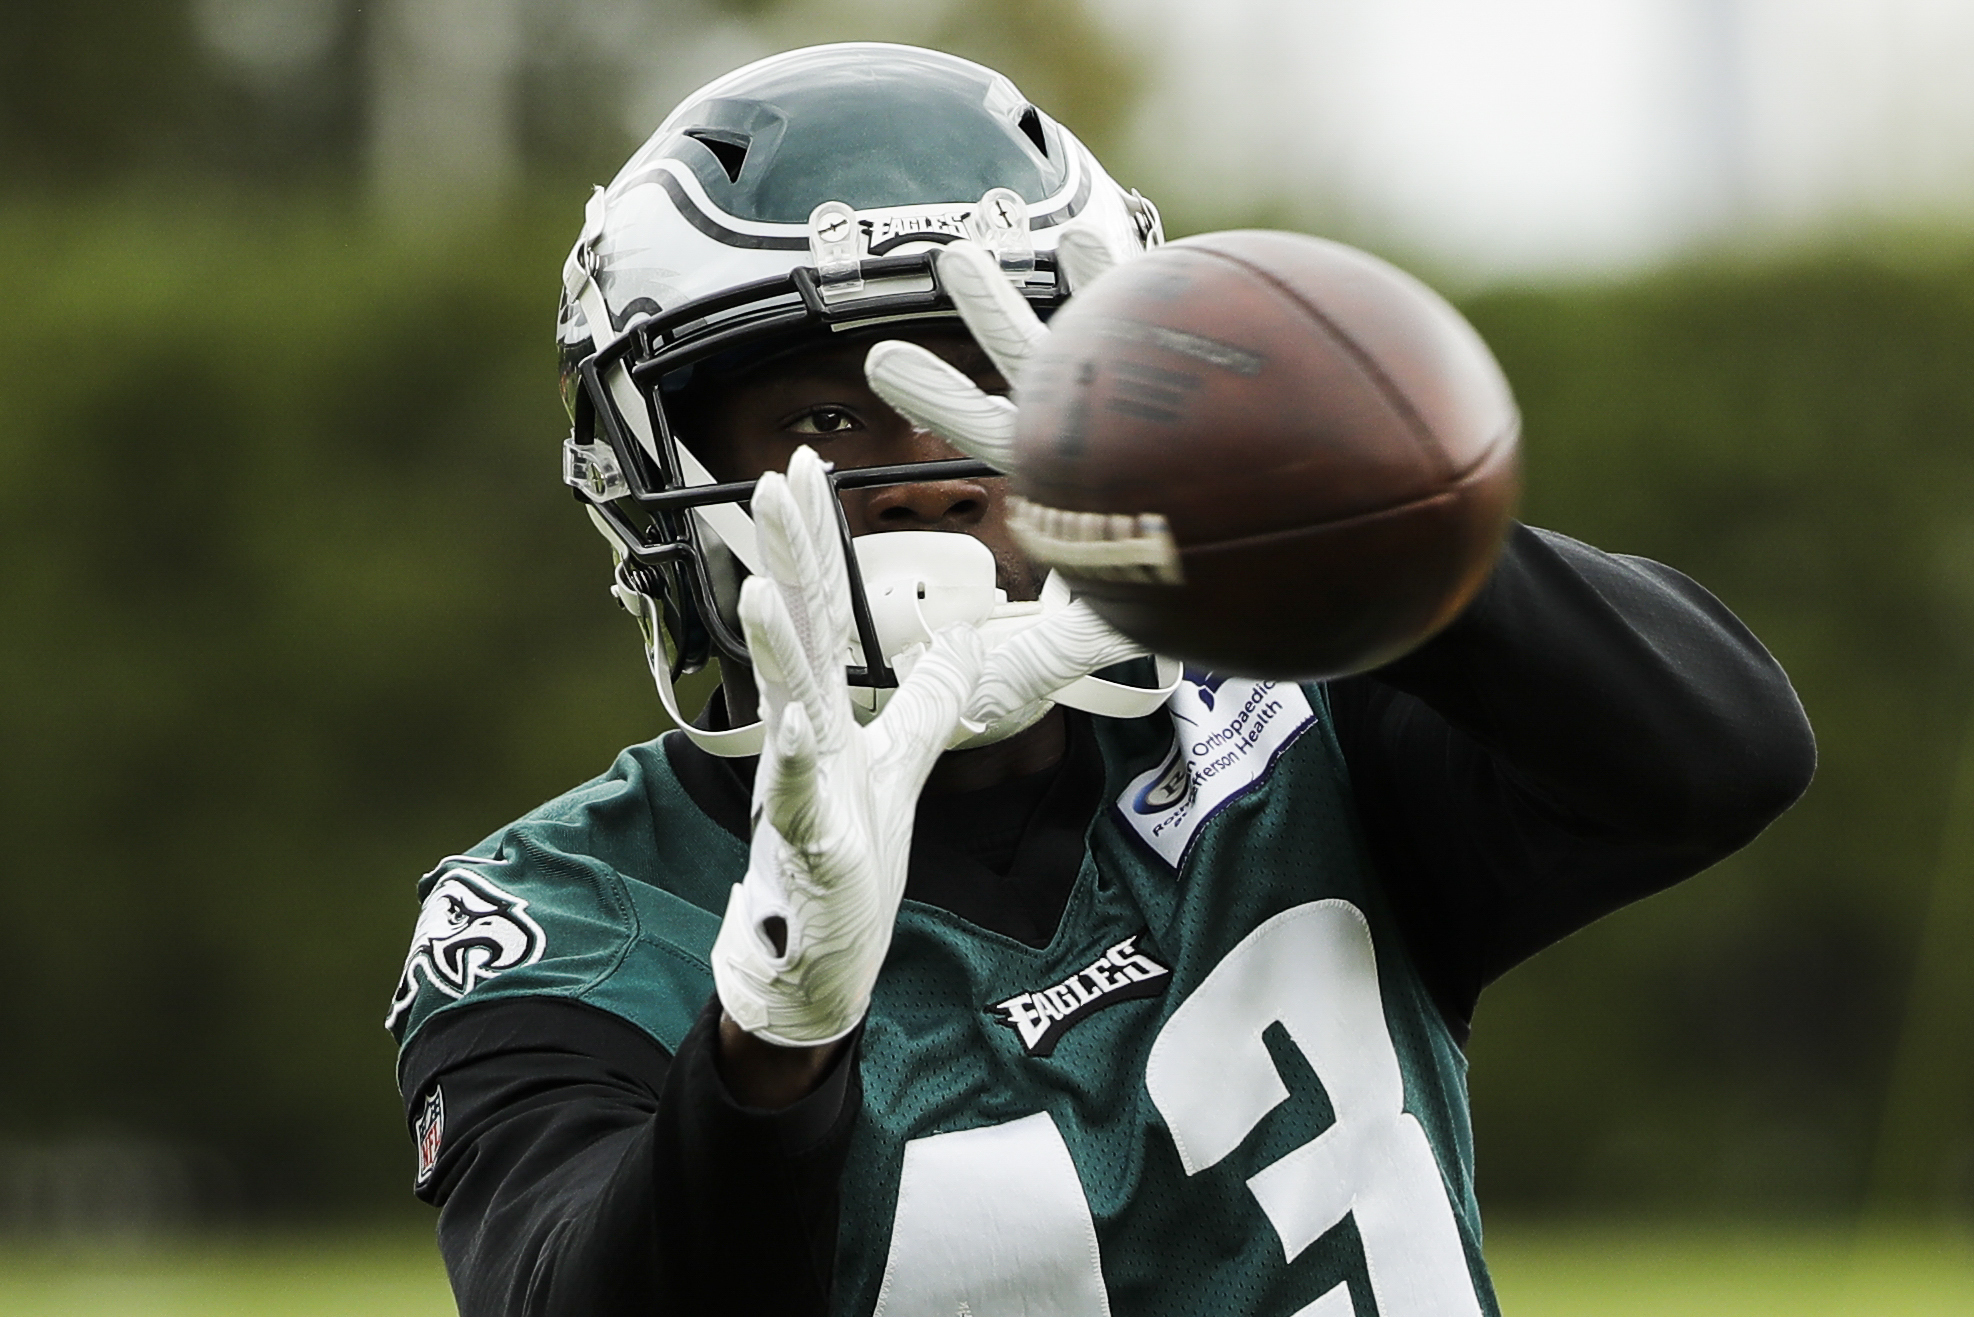 Without DeSean Jackson, Eagles struggling at wide receiver